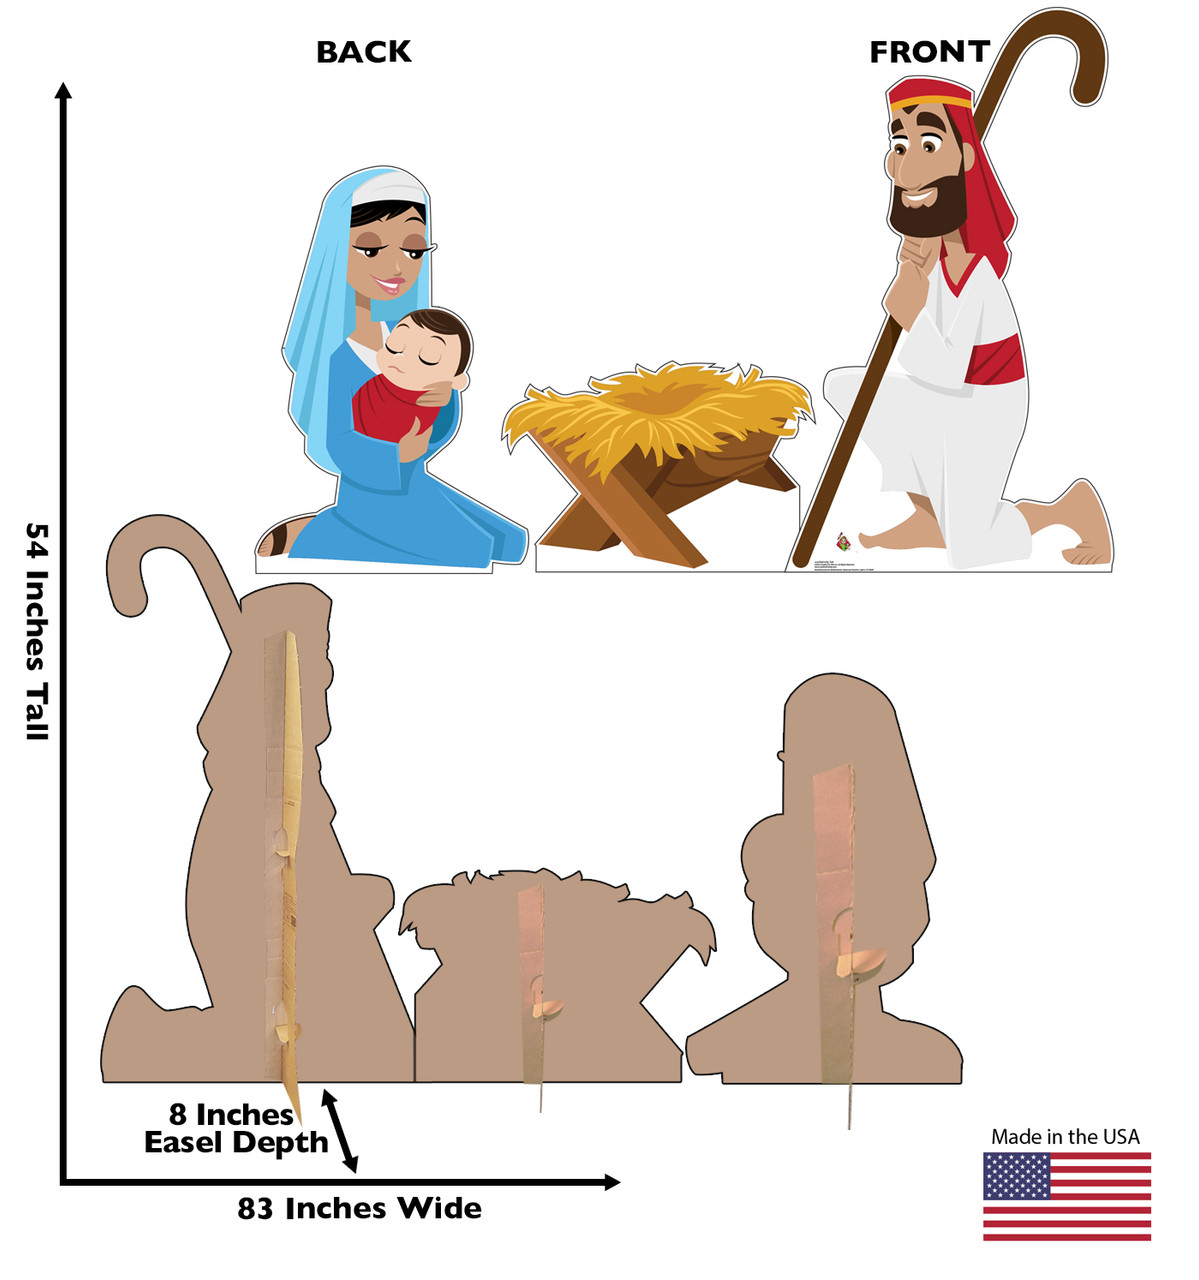 Life-size cardboard standee set of the Nativity with front and back dimensions.